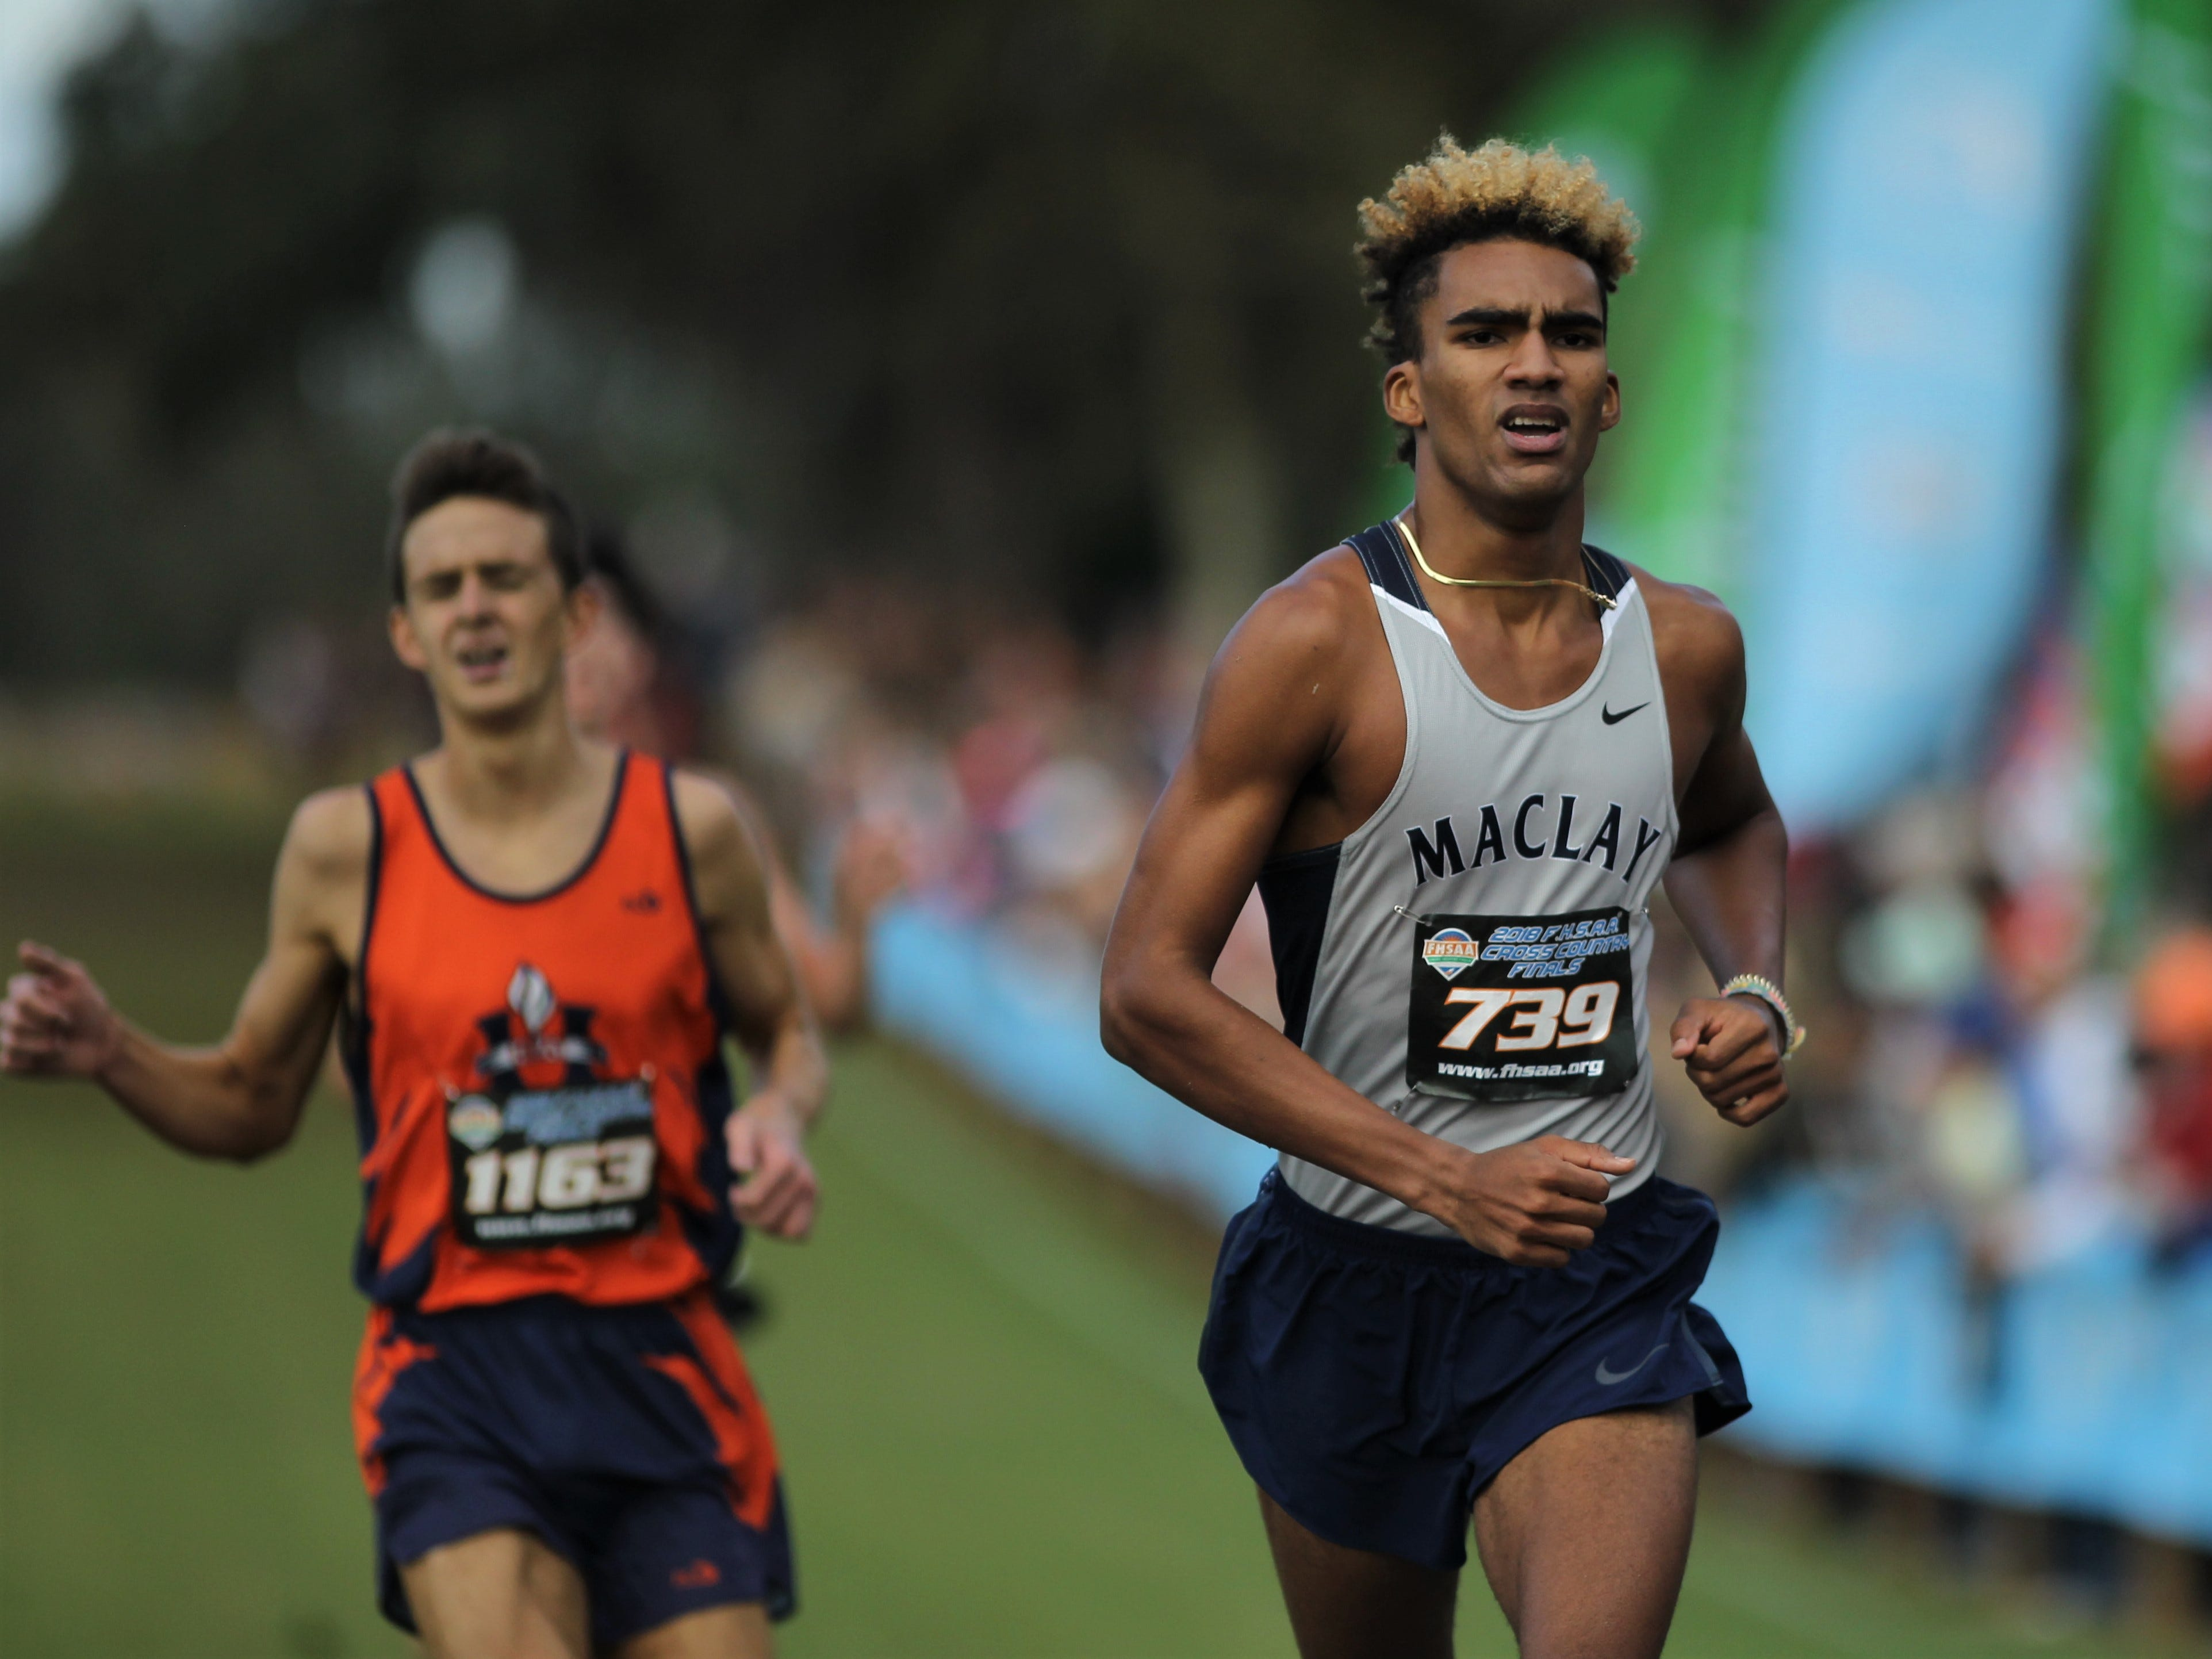 Maclay junior Jay Brown races to the finish of the Class 1A boys race at the FHSAA Cross Country State Championships at Apalachee Regional Park on Saturday, Nov. 10, 2018. Brown took third.